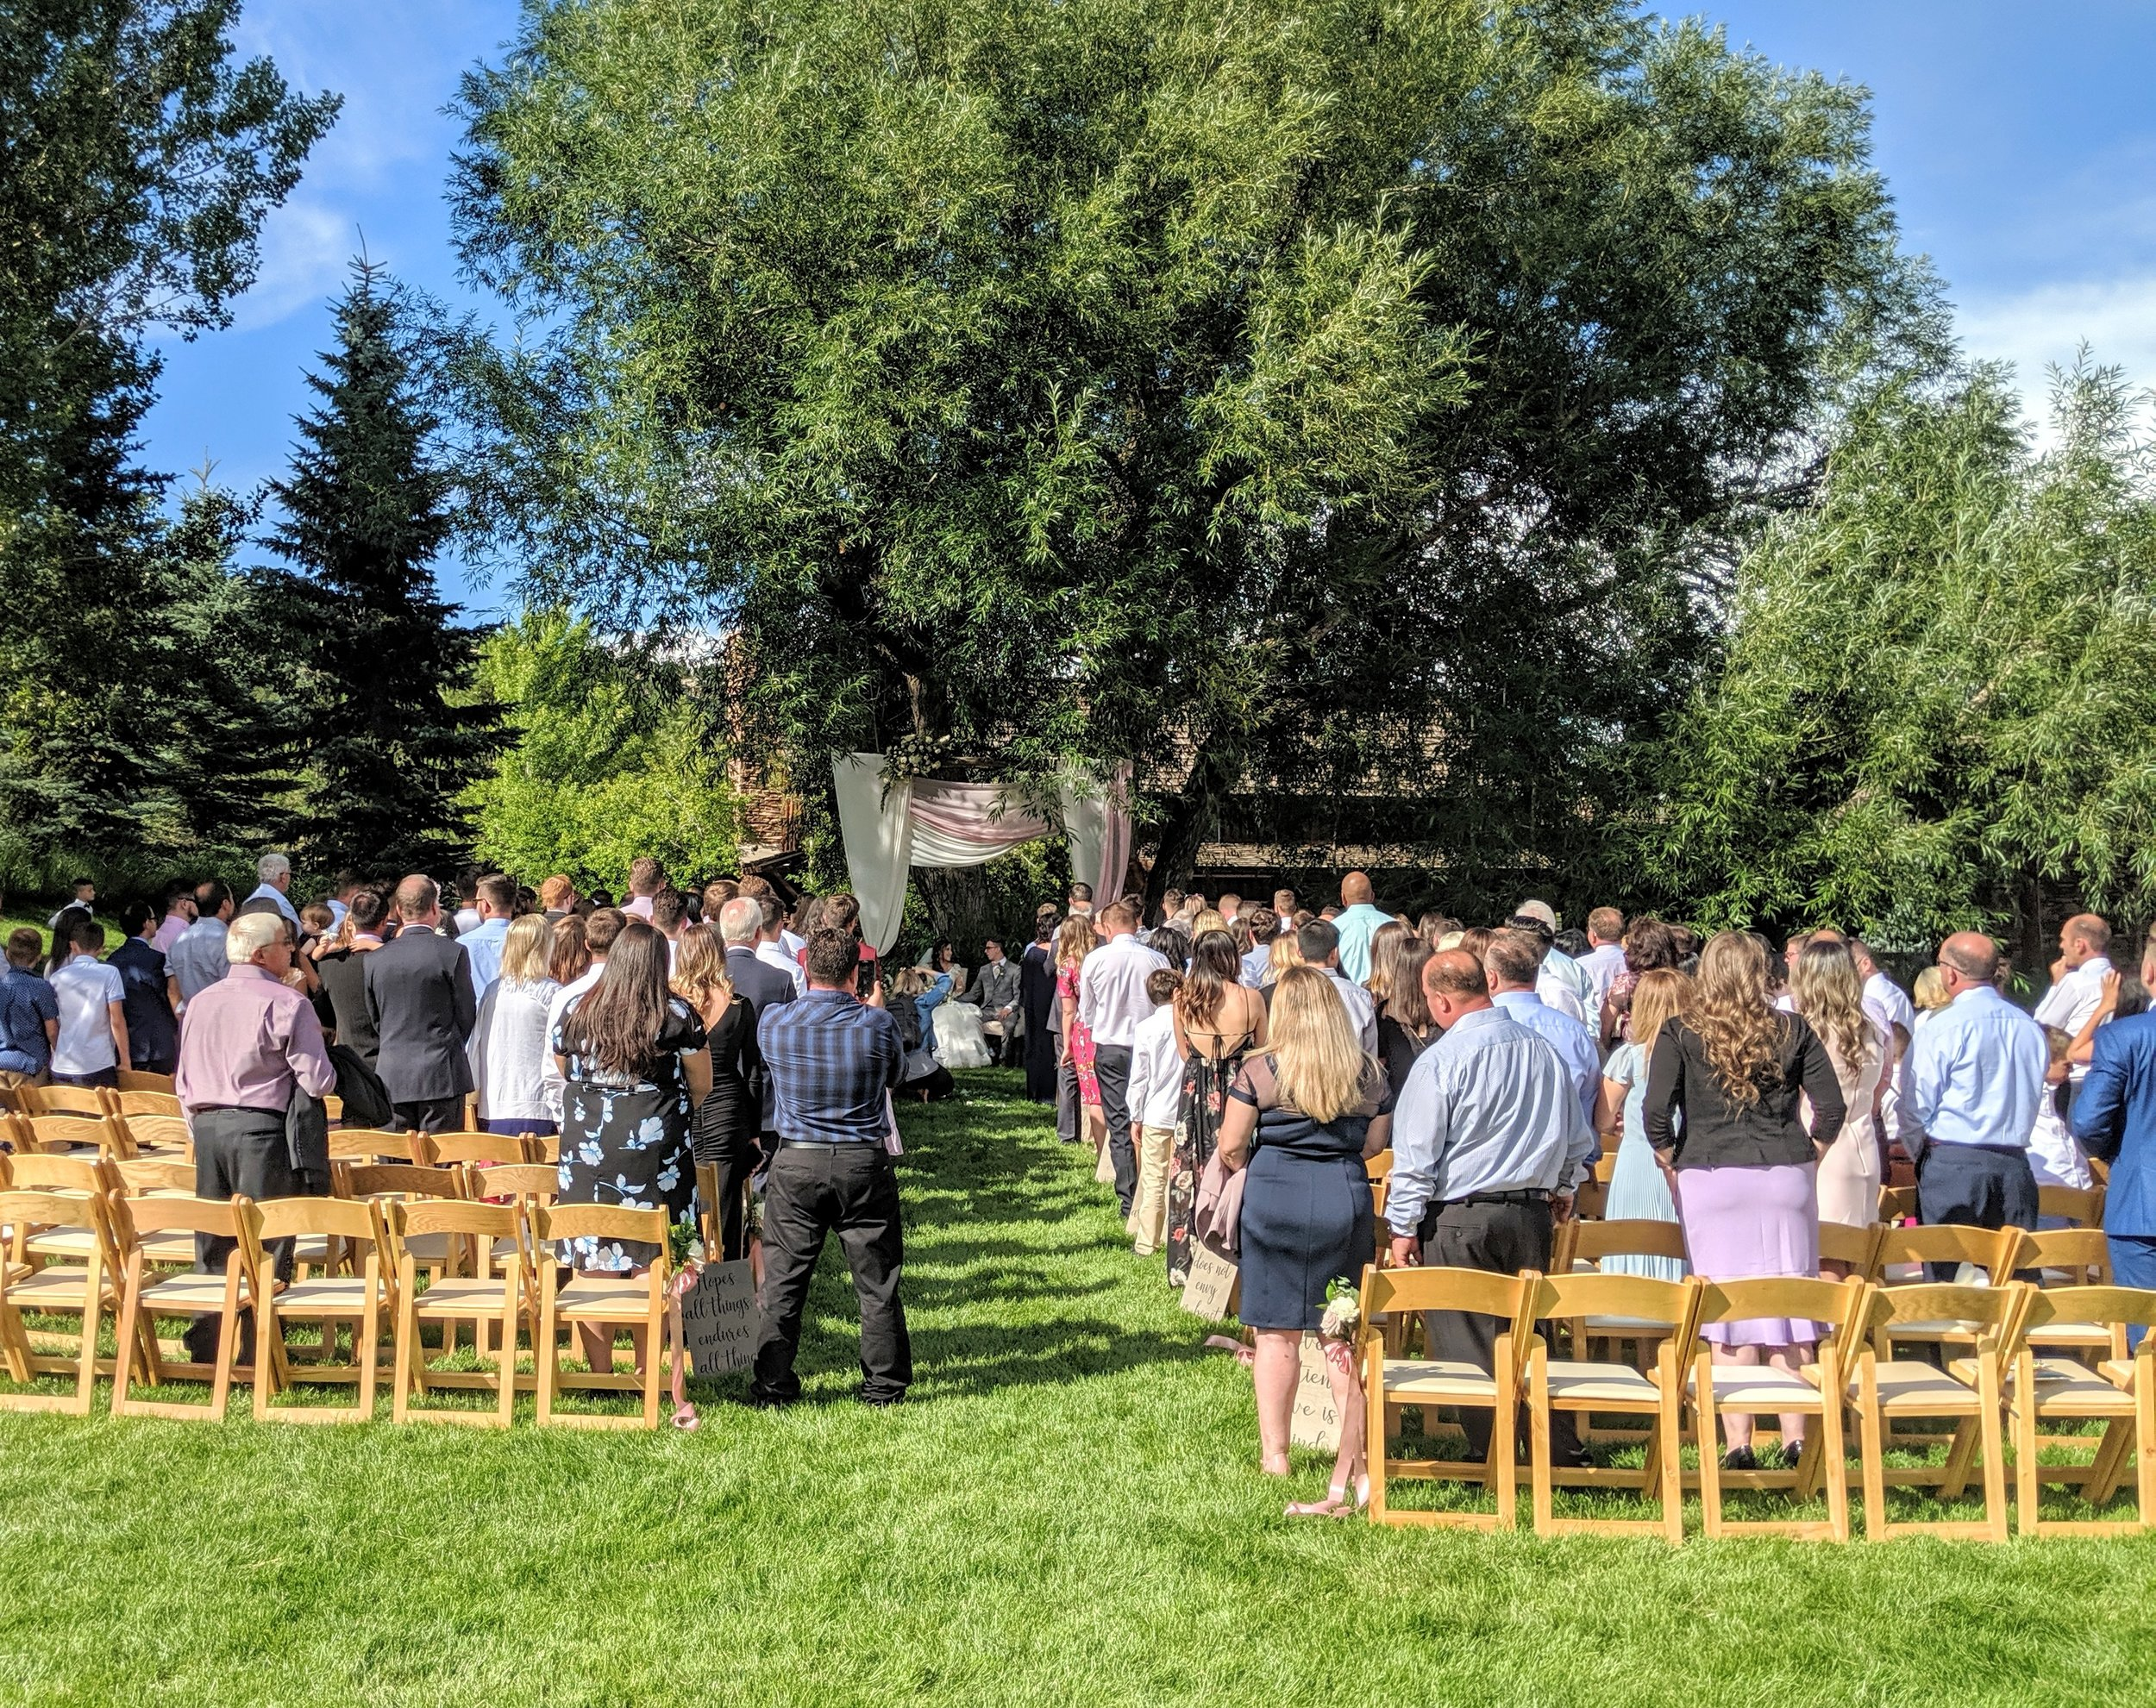 Flute and Strings by Christen Stephens, Flute and Strings Wedding Ceremony Music at Spruce Mountain Ranch in Larkspur, Colorado